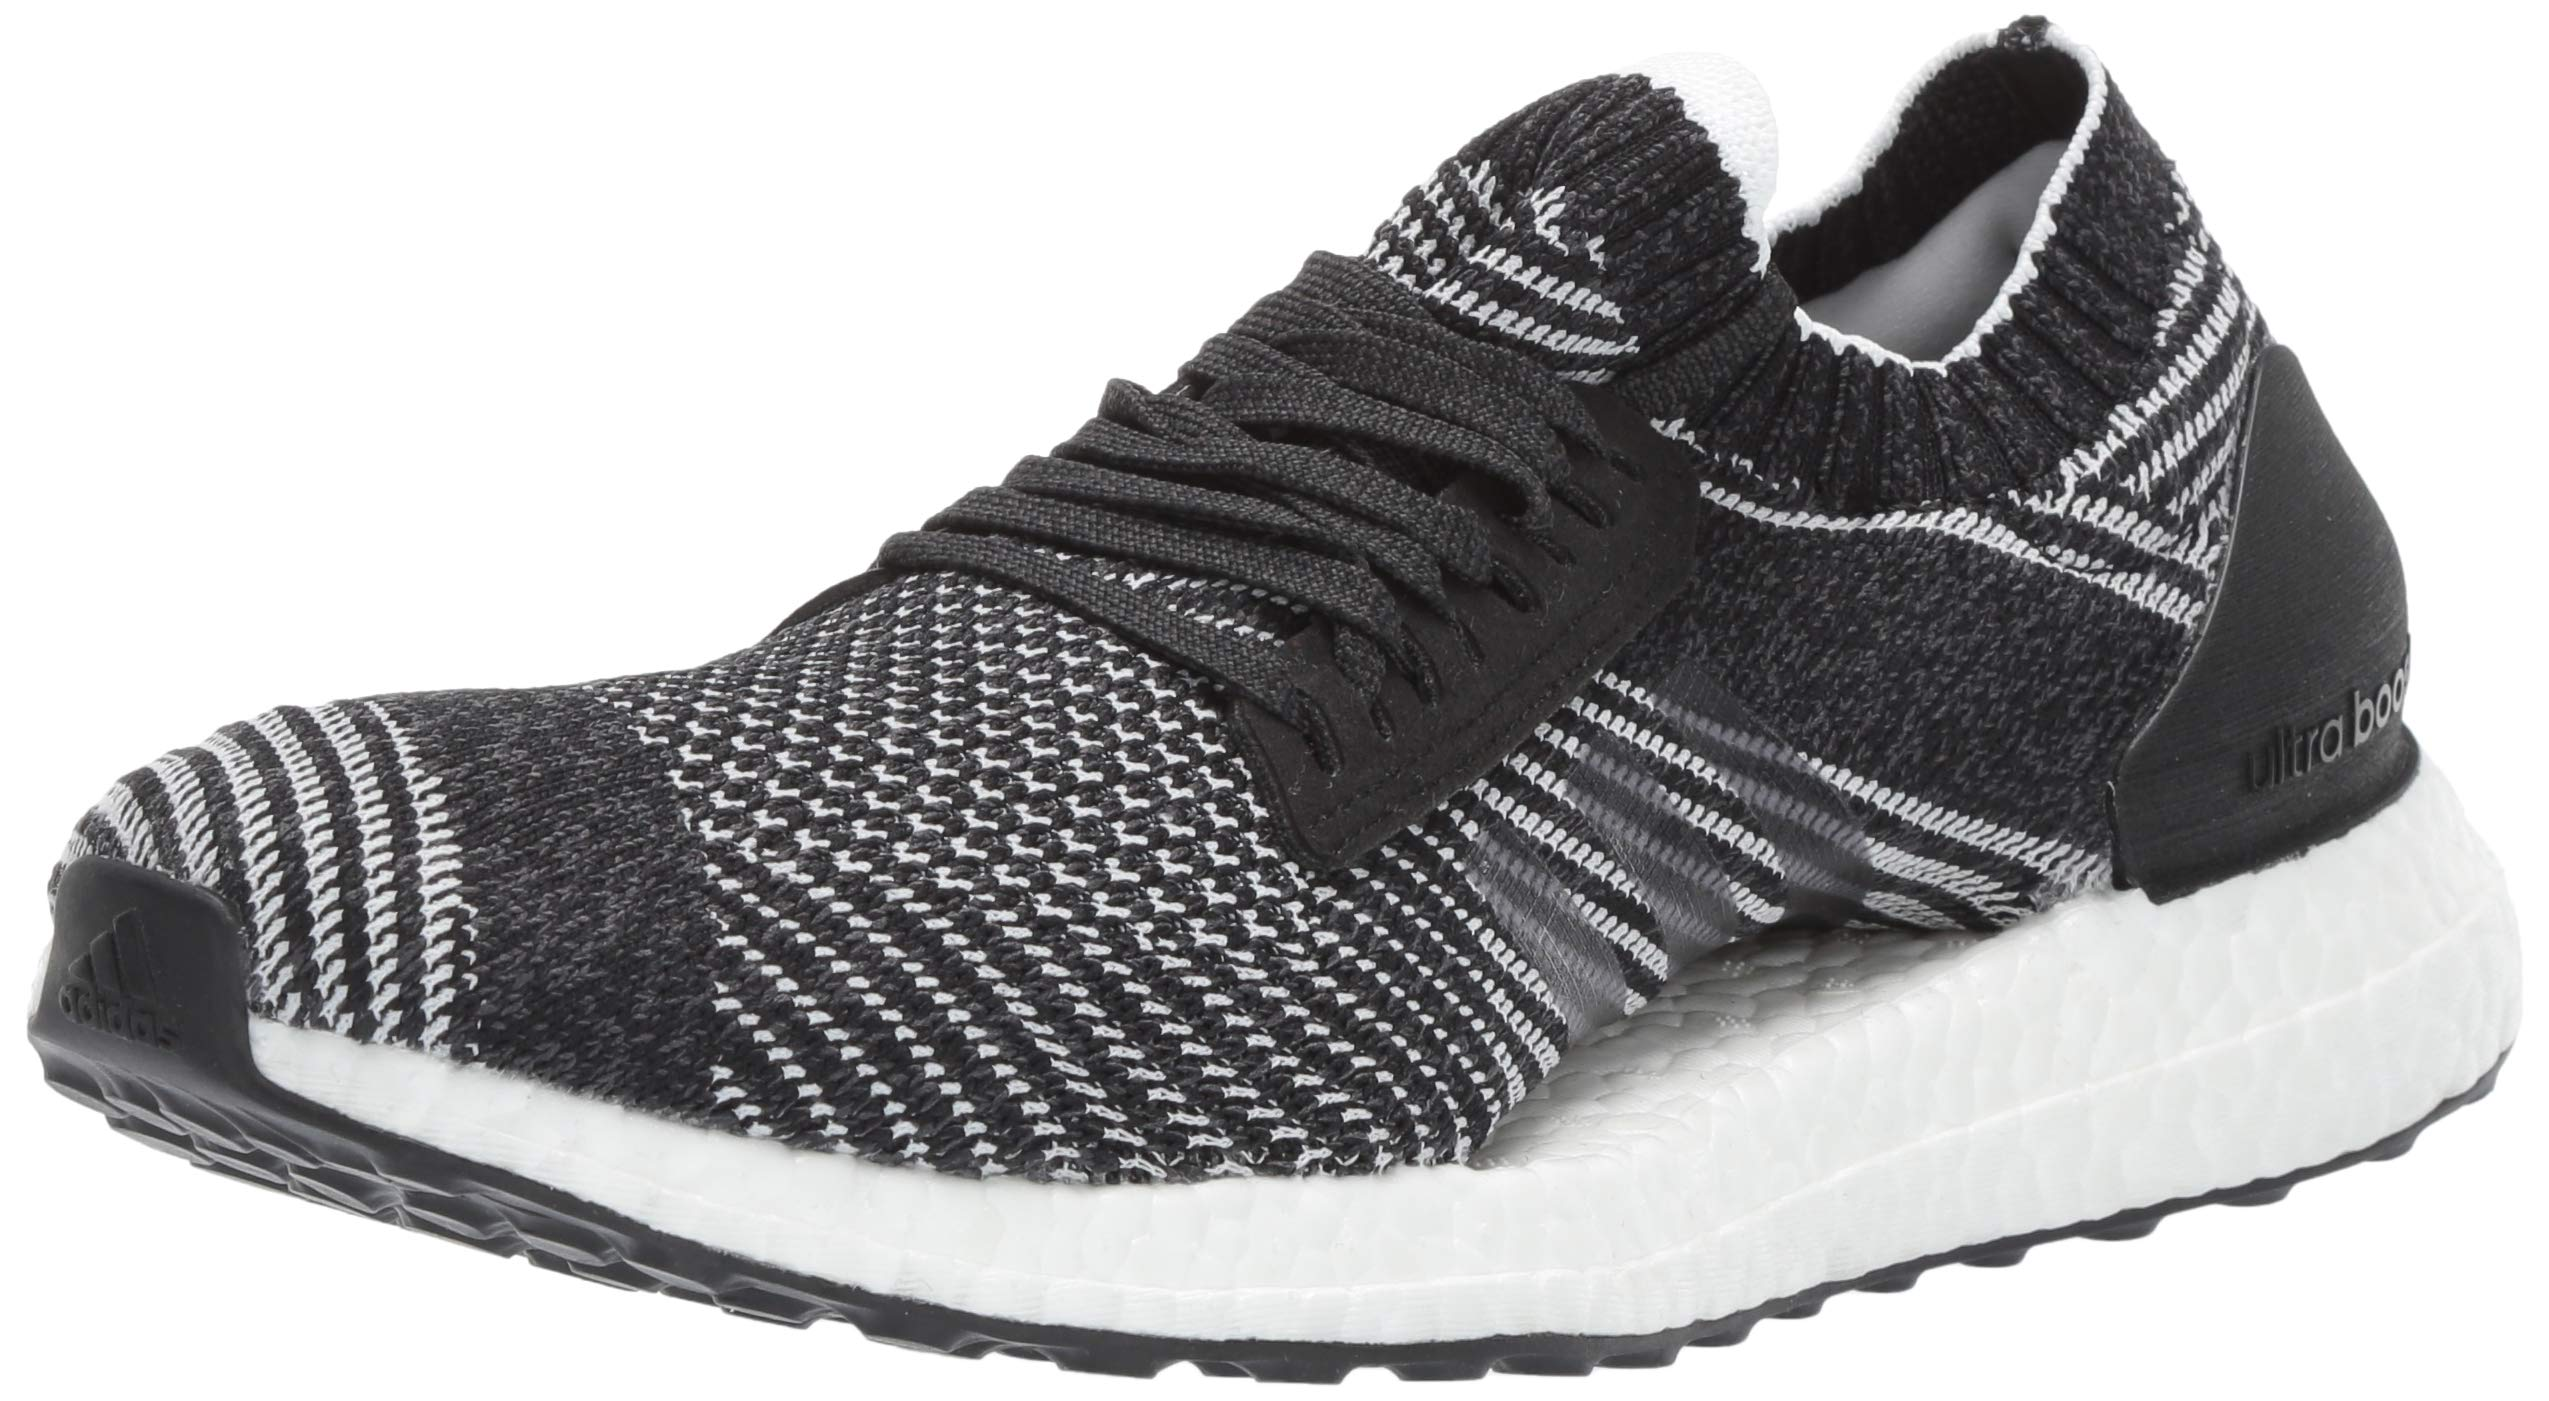 849a9438e Galleon - Adidas Women s Ultraboost X